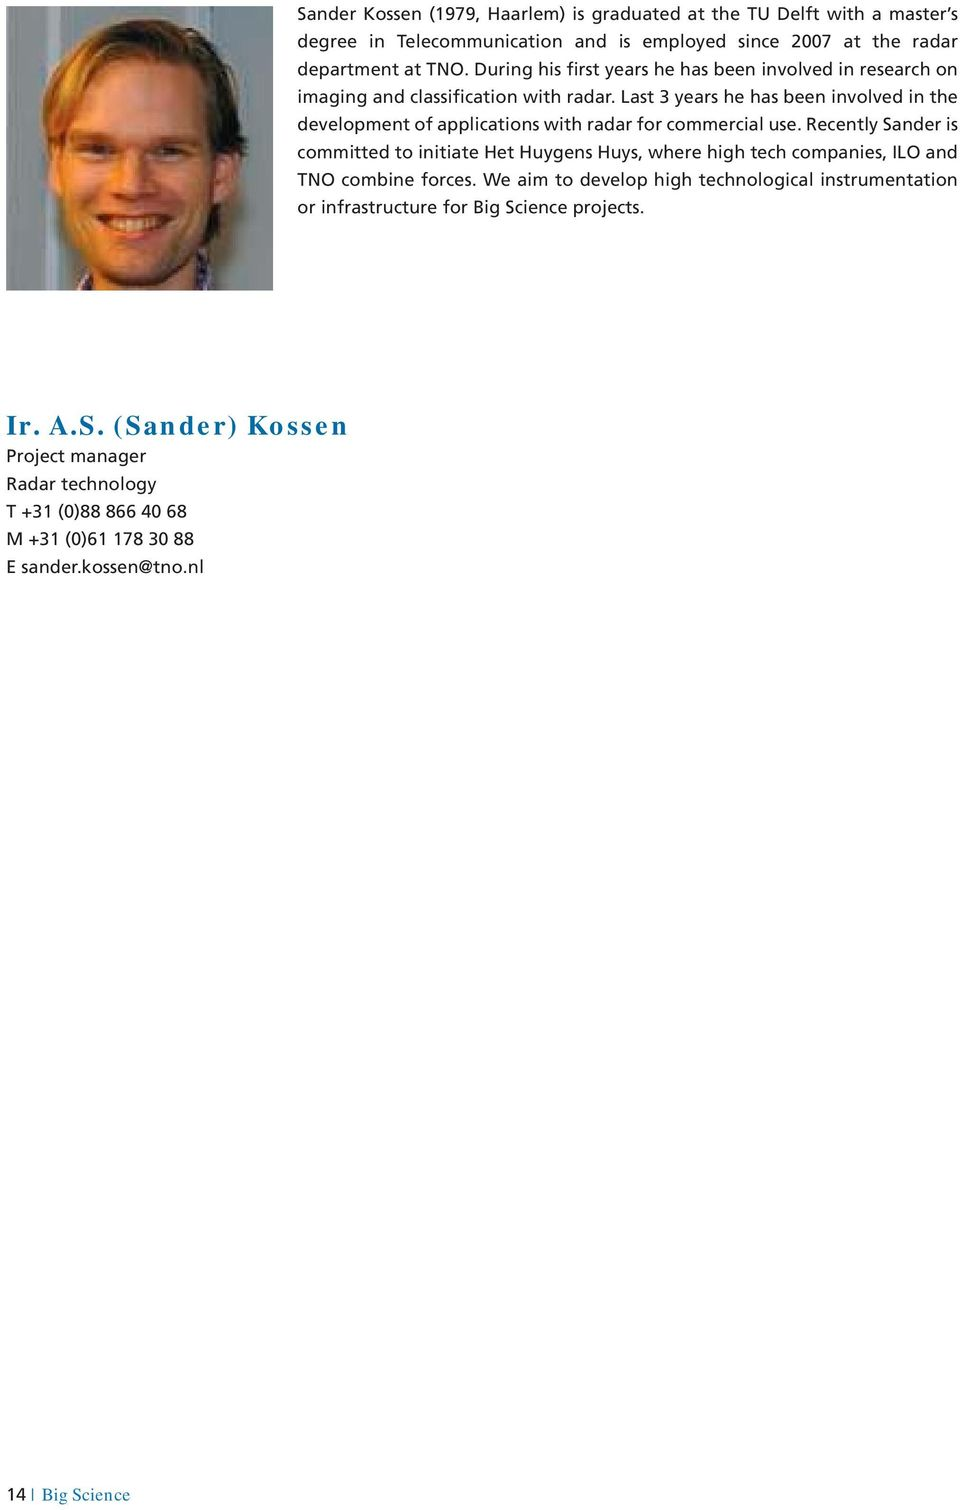 Last 3 years he has been involved in the development of applications with radar for commercial use.